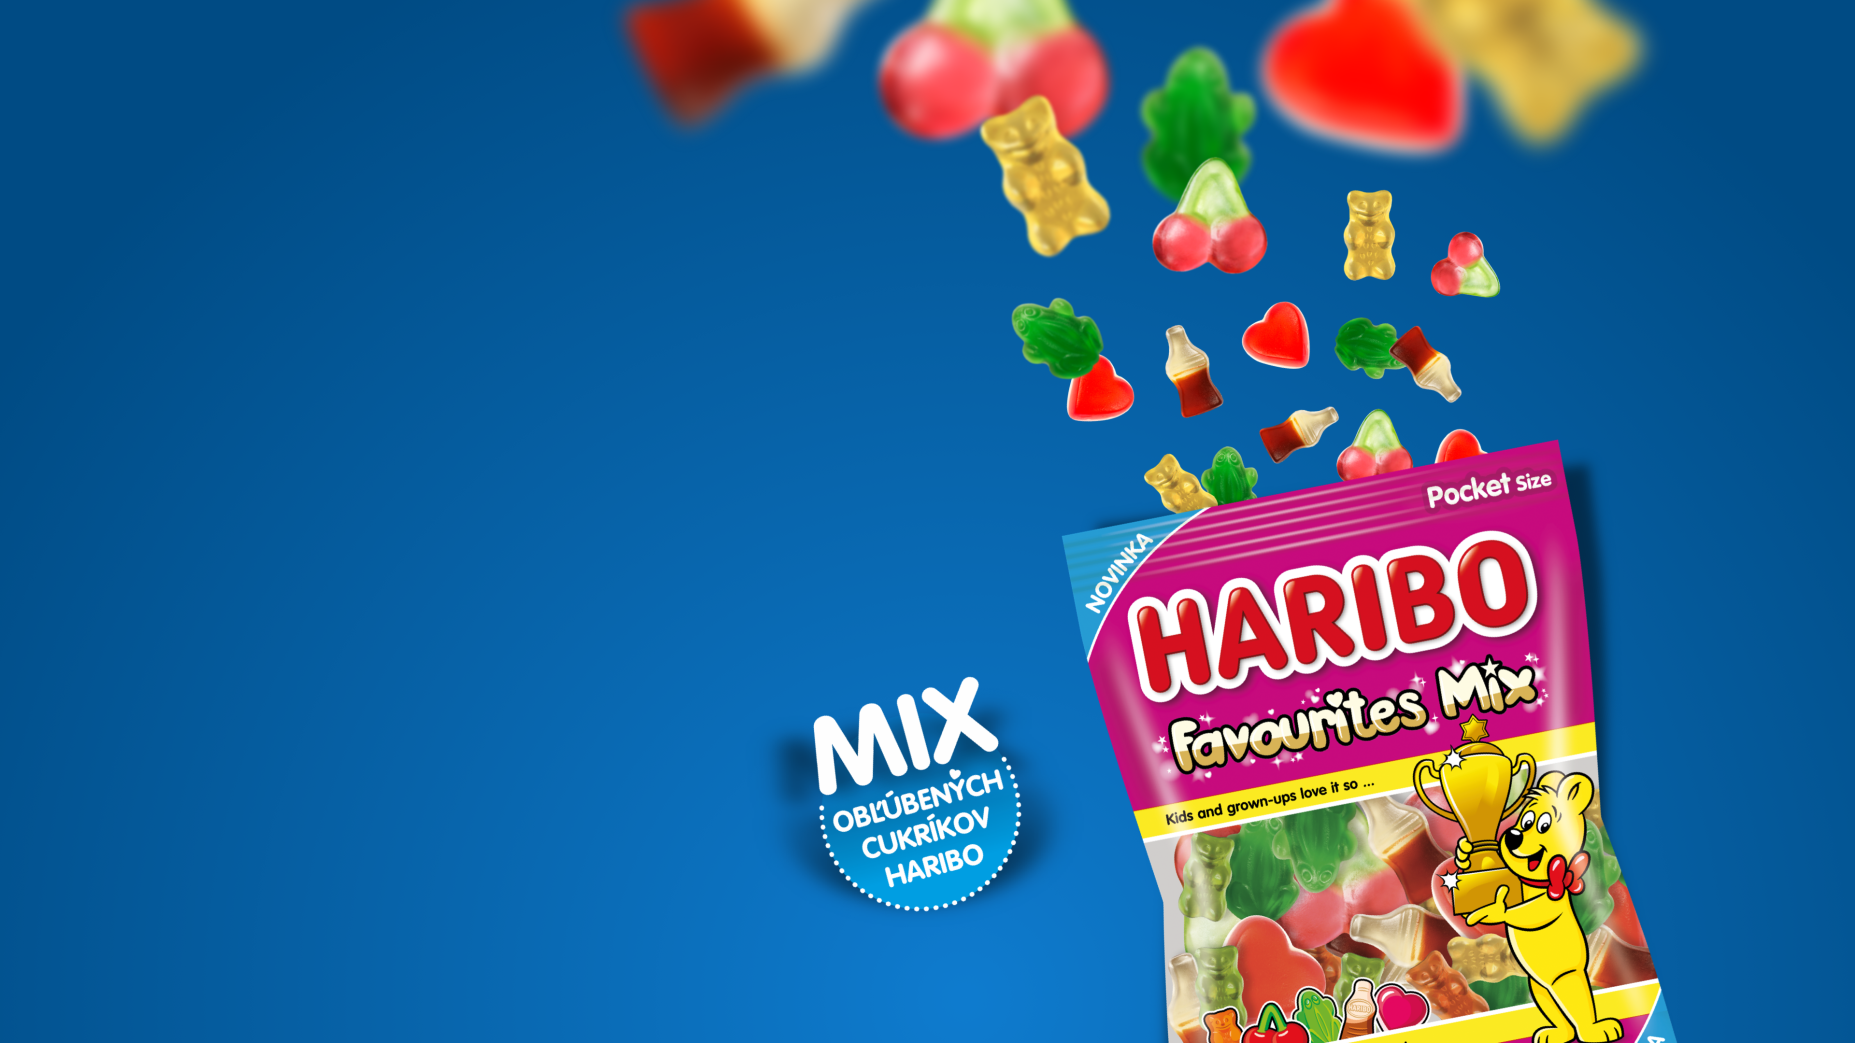 Haribo Favourites Mix Cover 3840x2160 SK